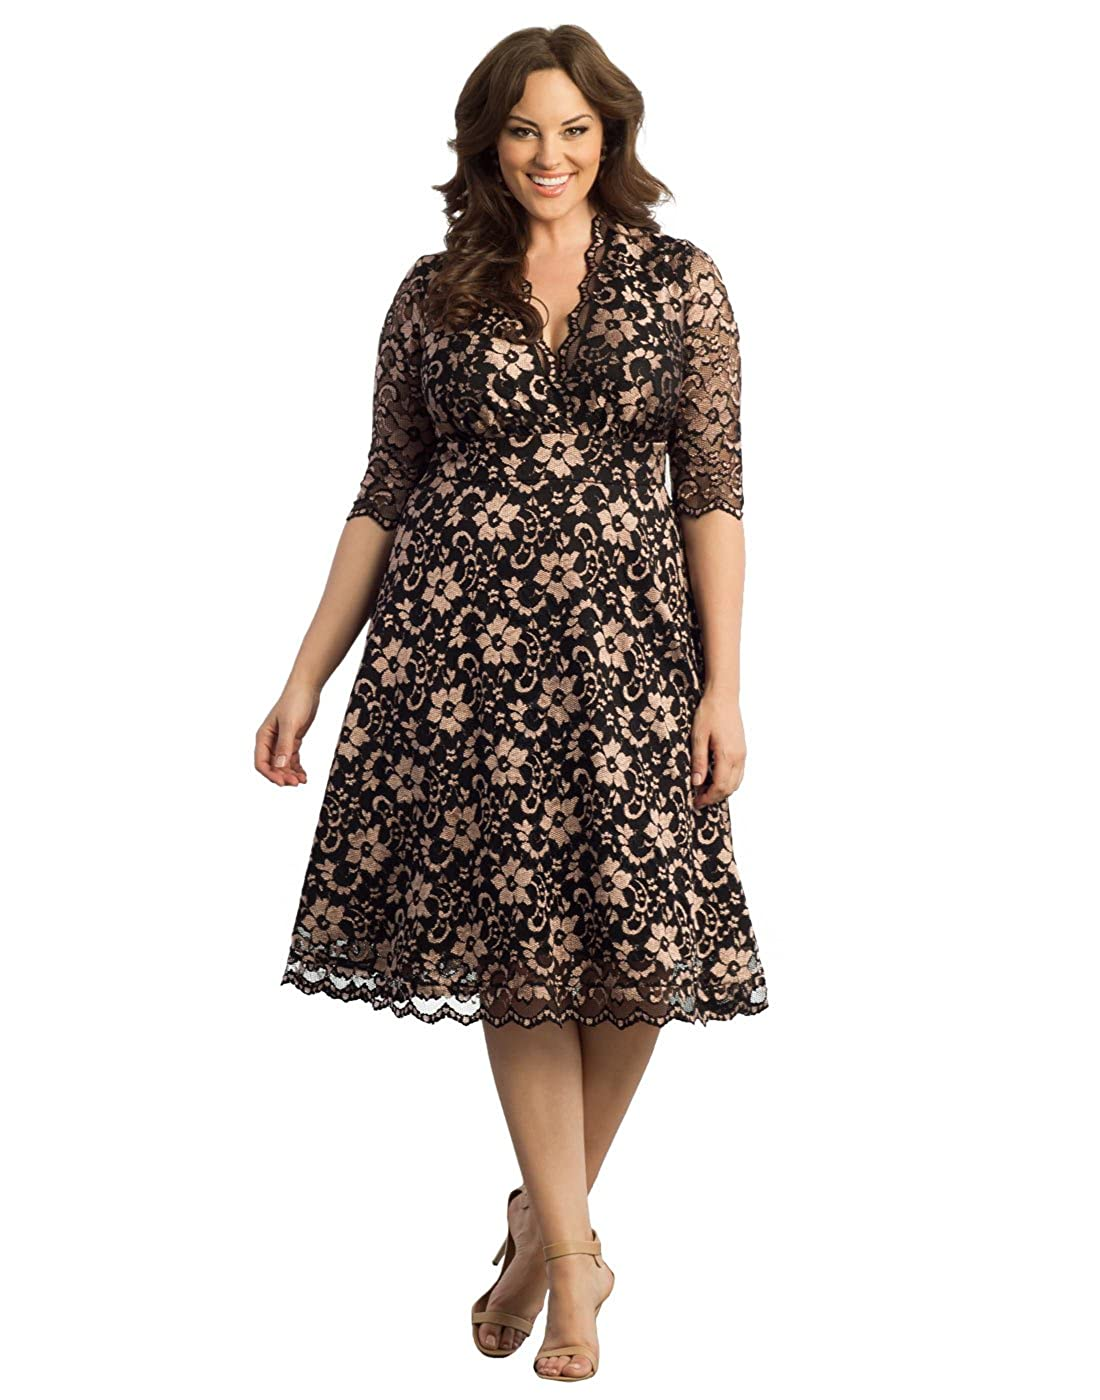 1960s Style Dresses- Retro Inspired Fashion Kiyonna Womens Plus Size Mademoiselle Lace Dress $164.00 AT vintagedancer.com